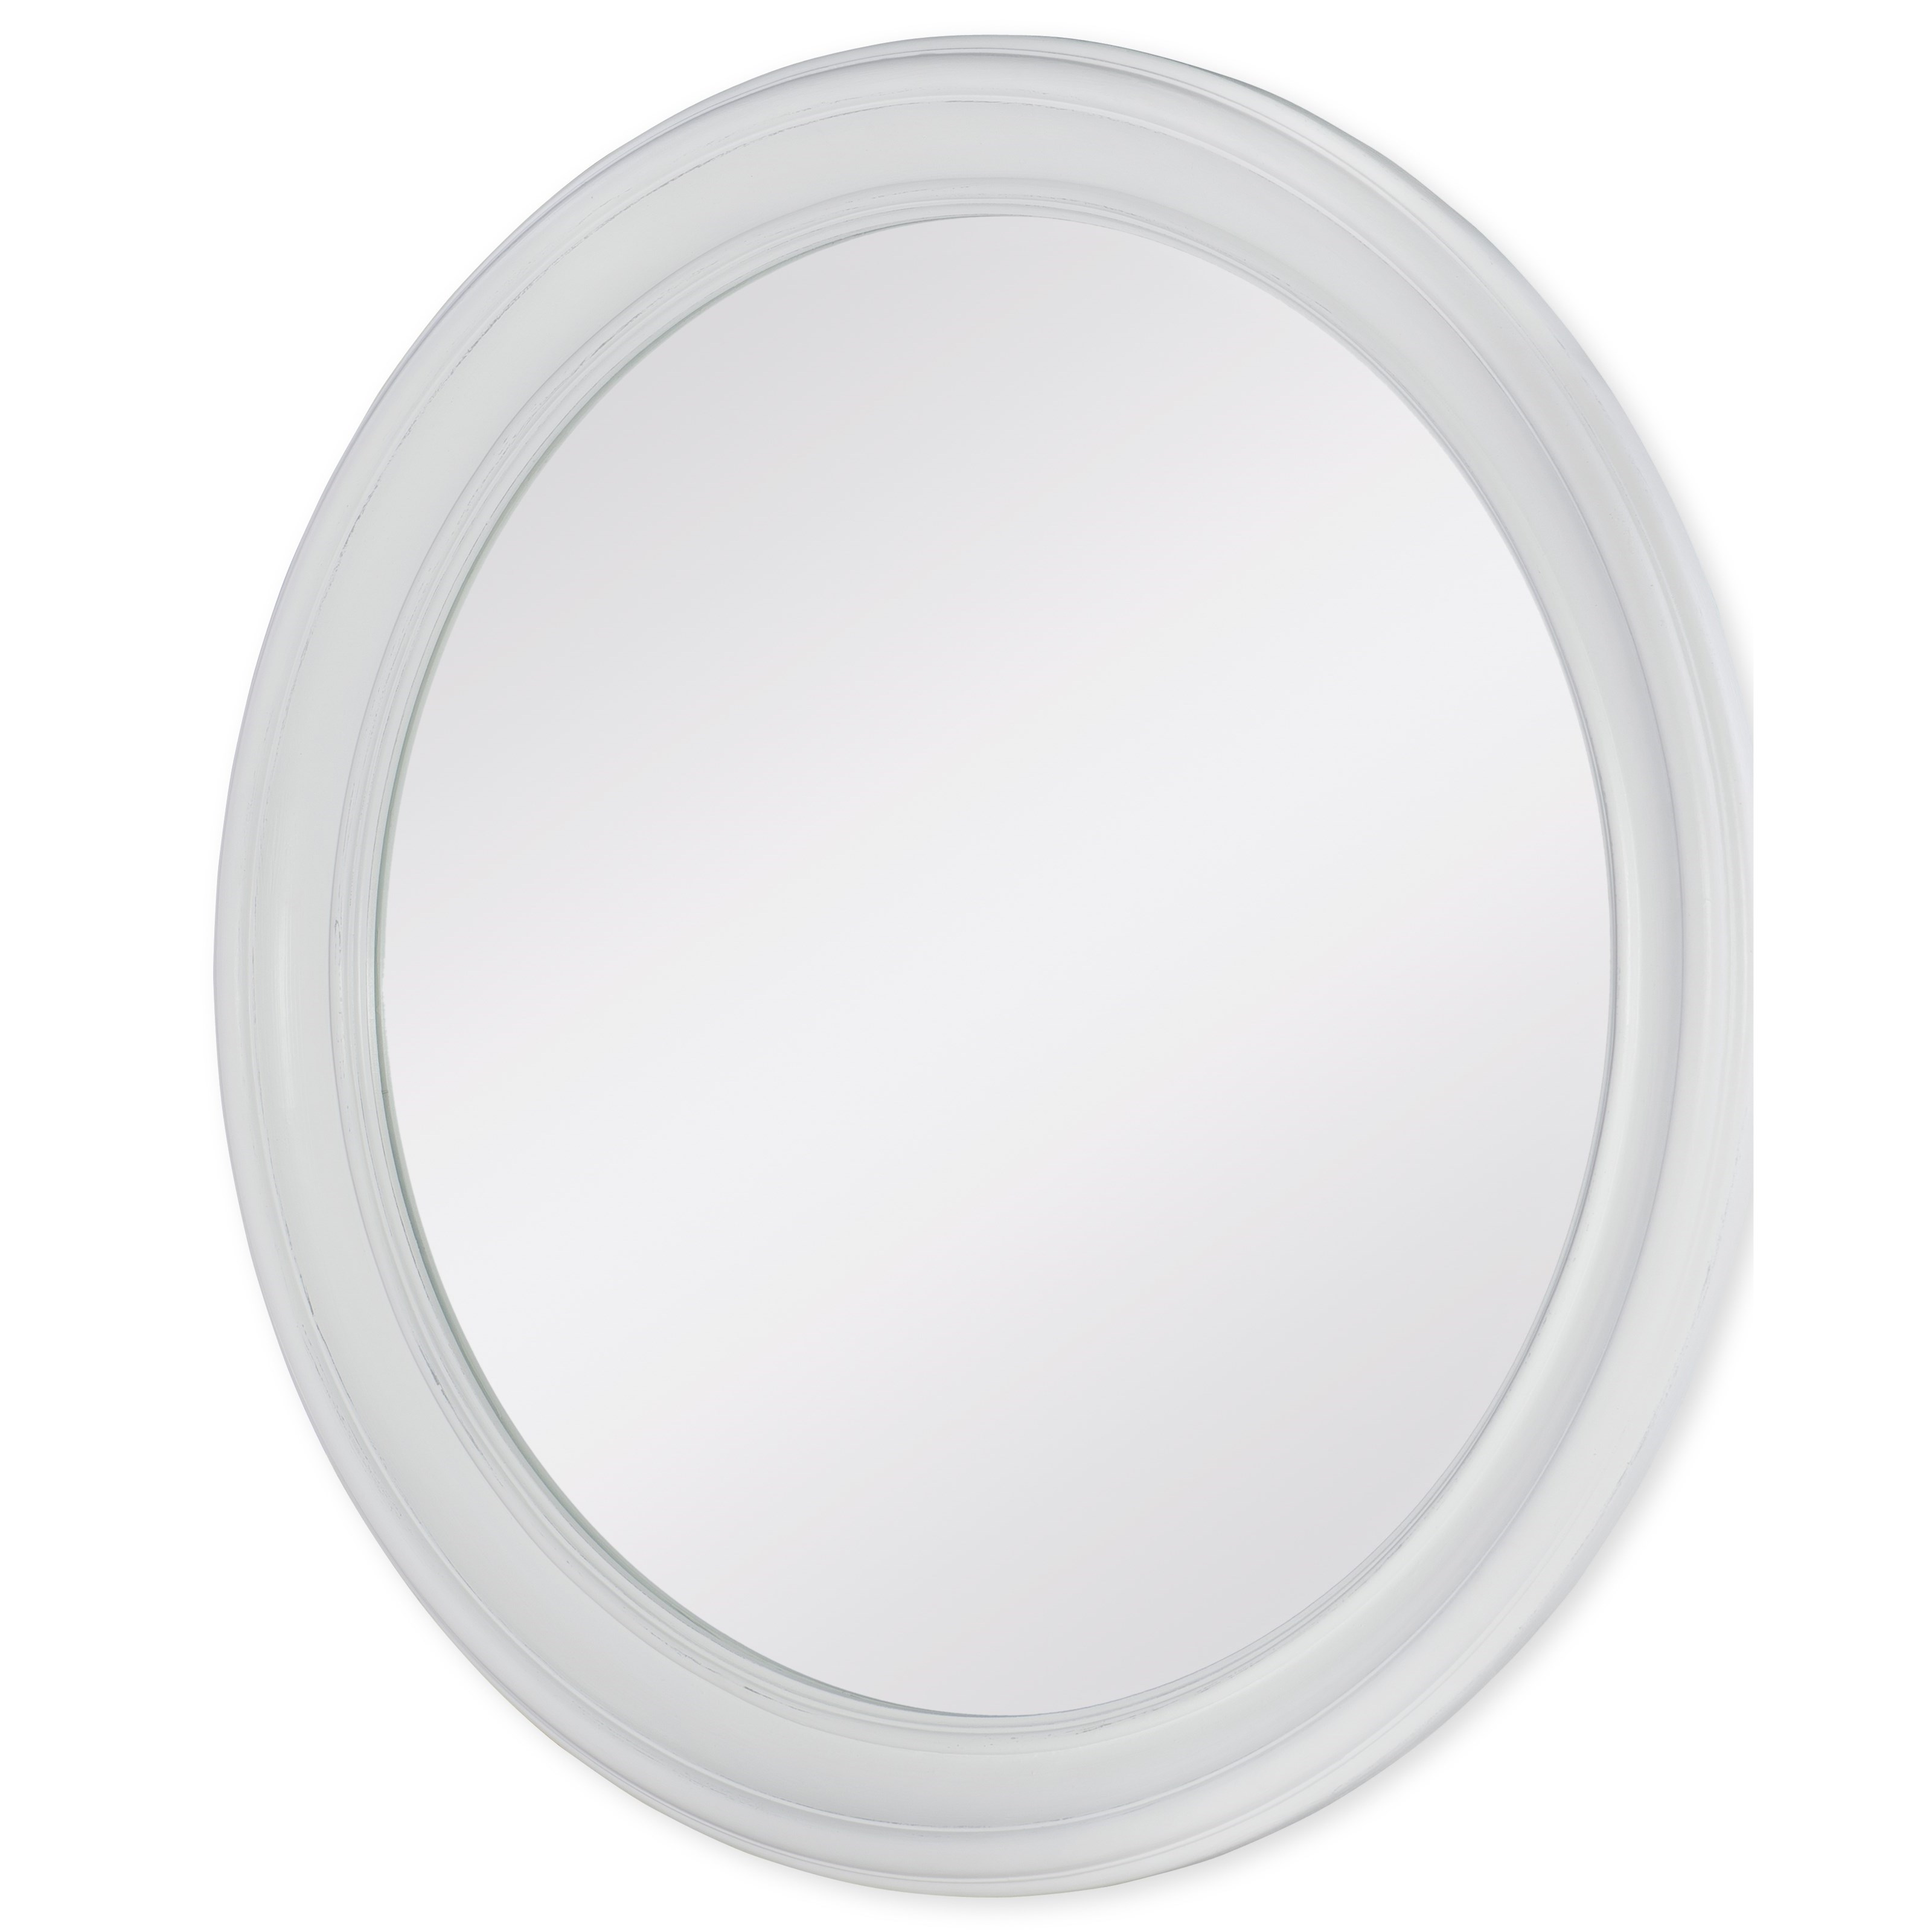 Rachael Ray Home by Legacy Classic Upstate Round Mirror - Item Number: 6041-0400